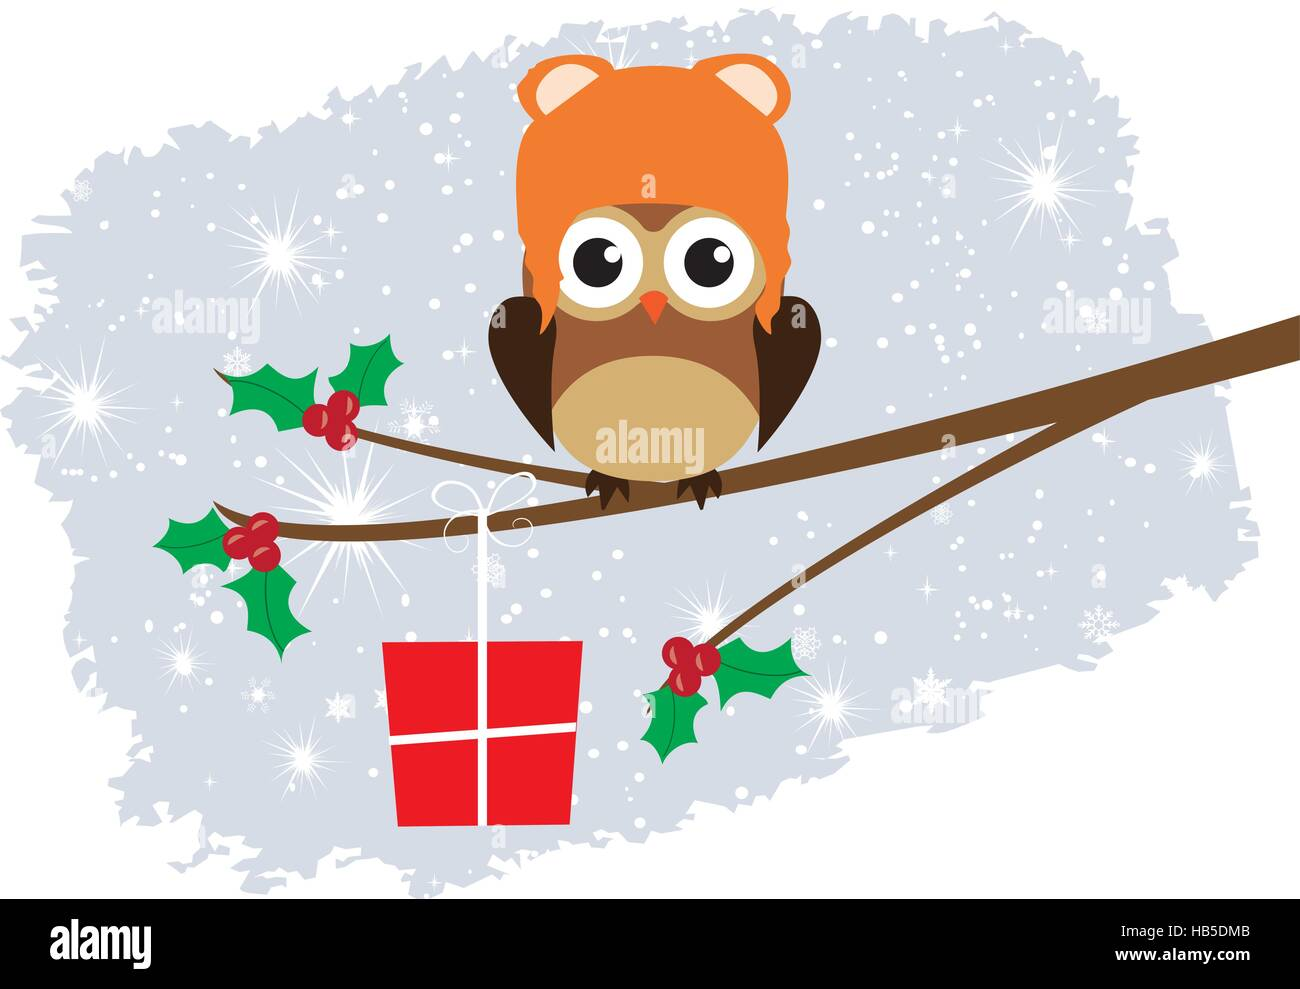 vector illustration of a tree with owl christmas background stock image - Owl Christmas